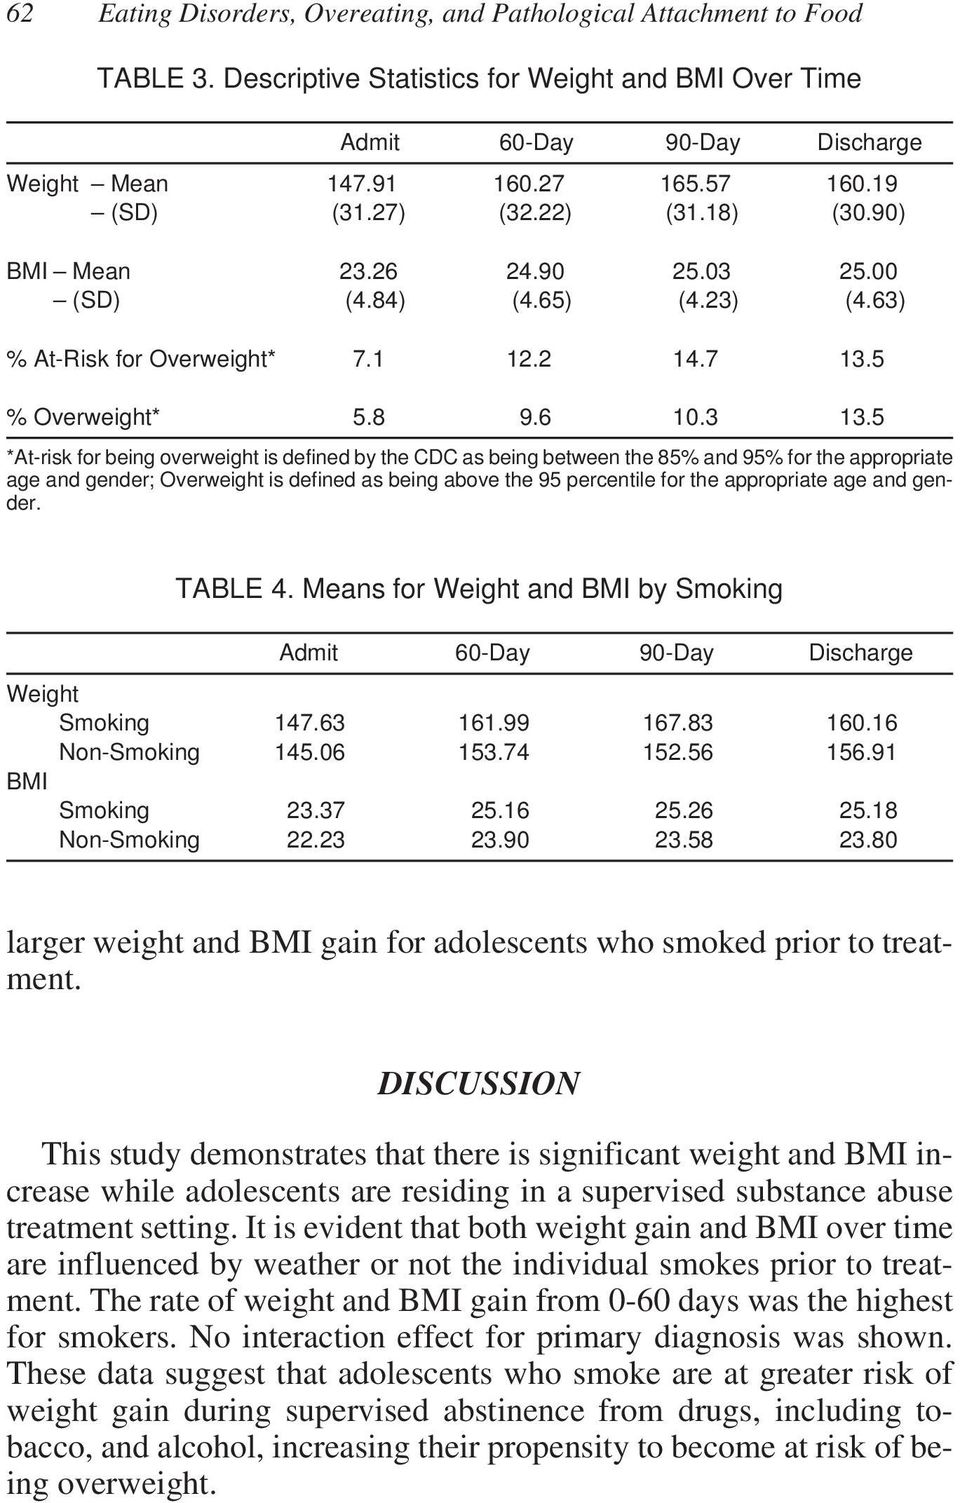 5 *At-risk for being overweight is defined by the CDC as being between the 85% and 95% for the appropriate age and gender; Overweight is defined as being above the 95 percentile for the appropriate